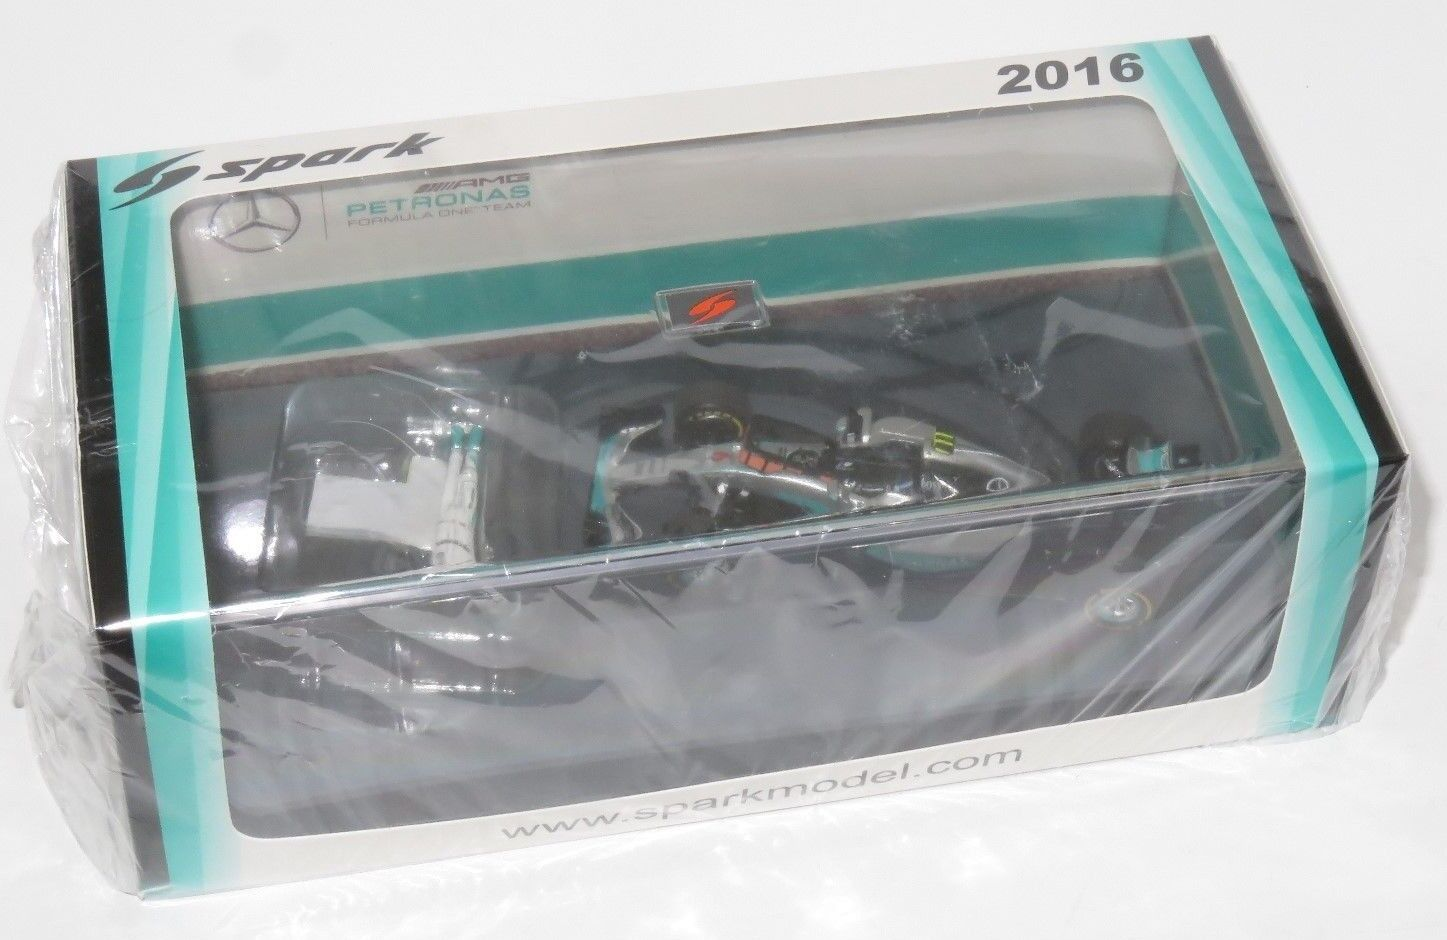 1/43 Spark Mercedes AMG F1 W07 Hybrid-Nico Rosberg Champion Edition Box Set